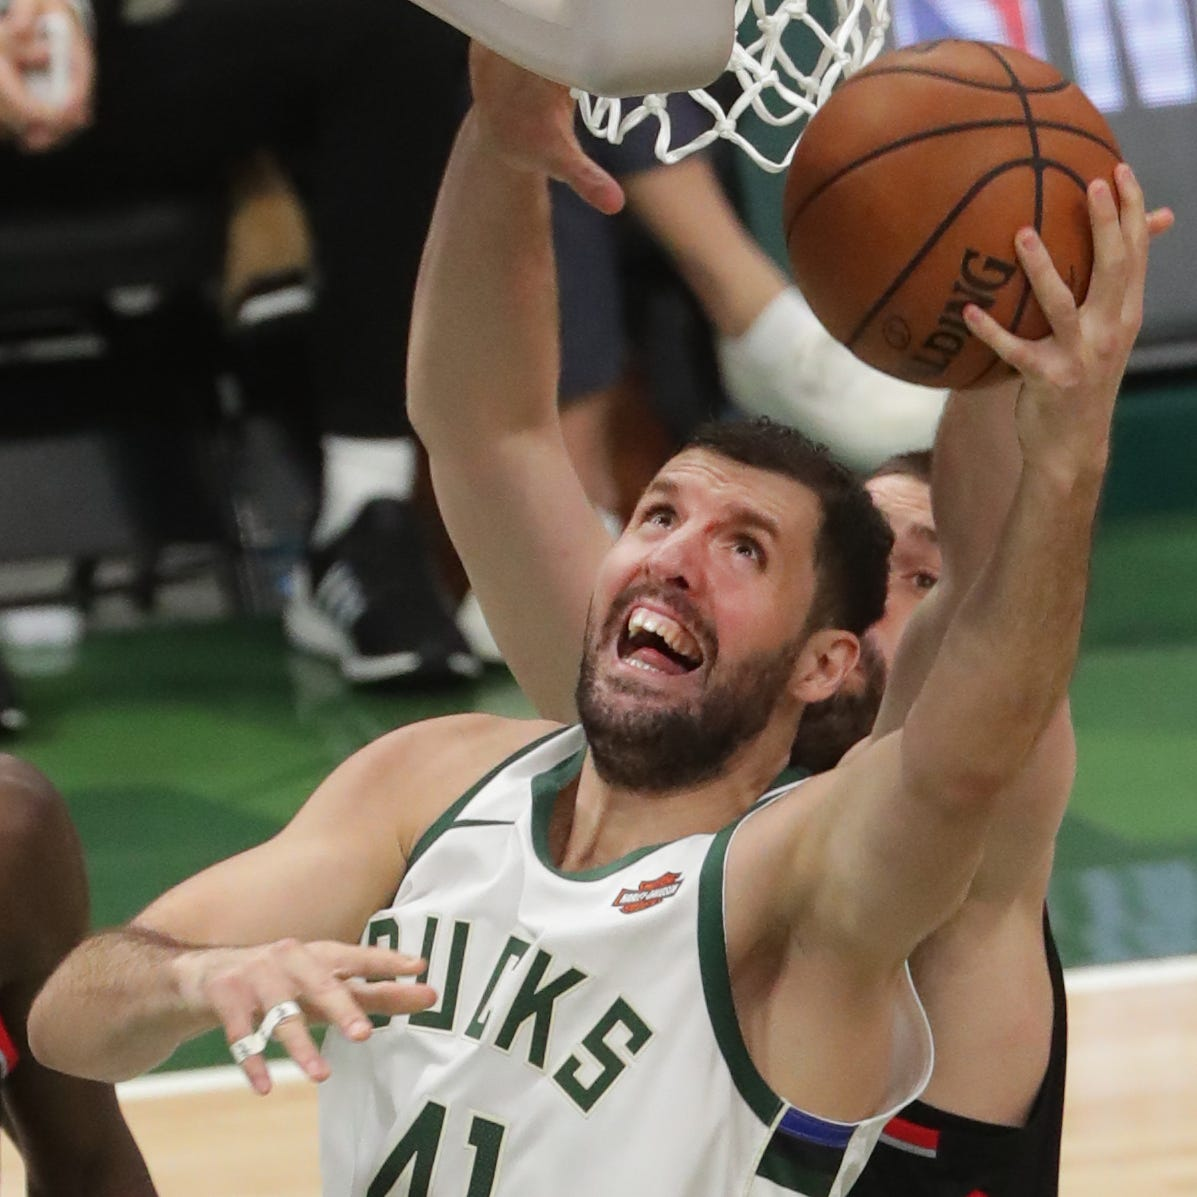 Everything you need to know for Game 2 of the Bucks' battle with the Raptors in the Eastern Conference finals